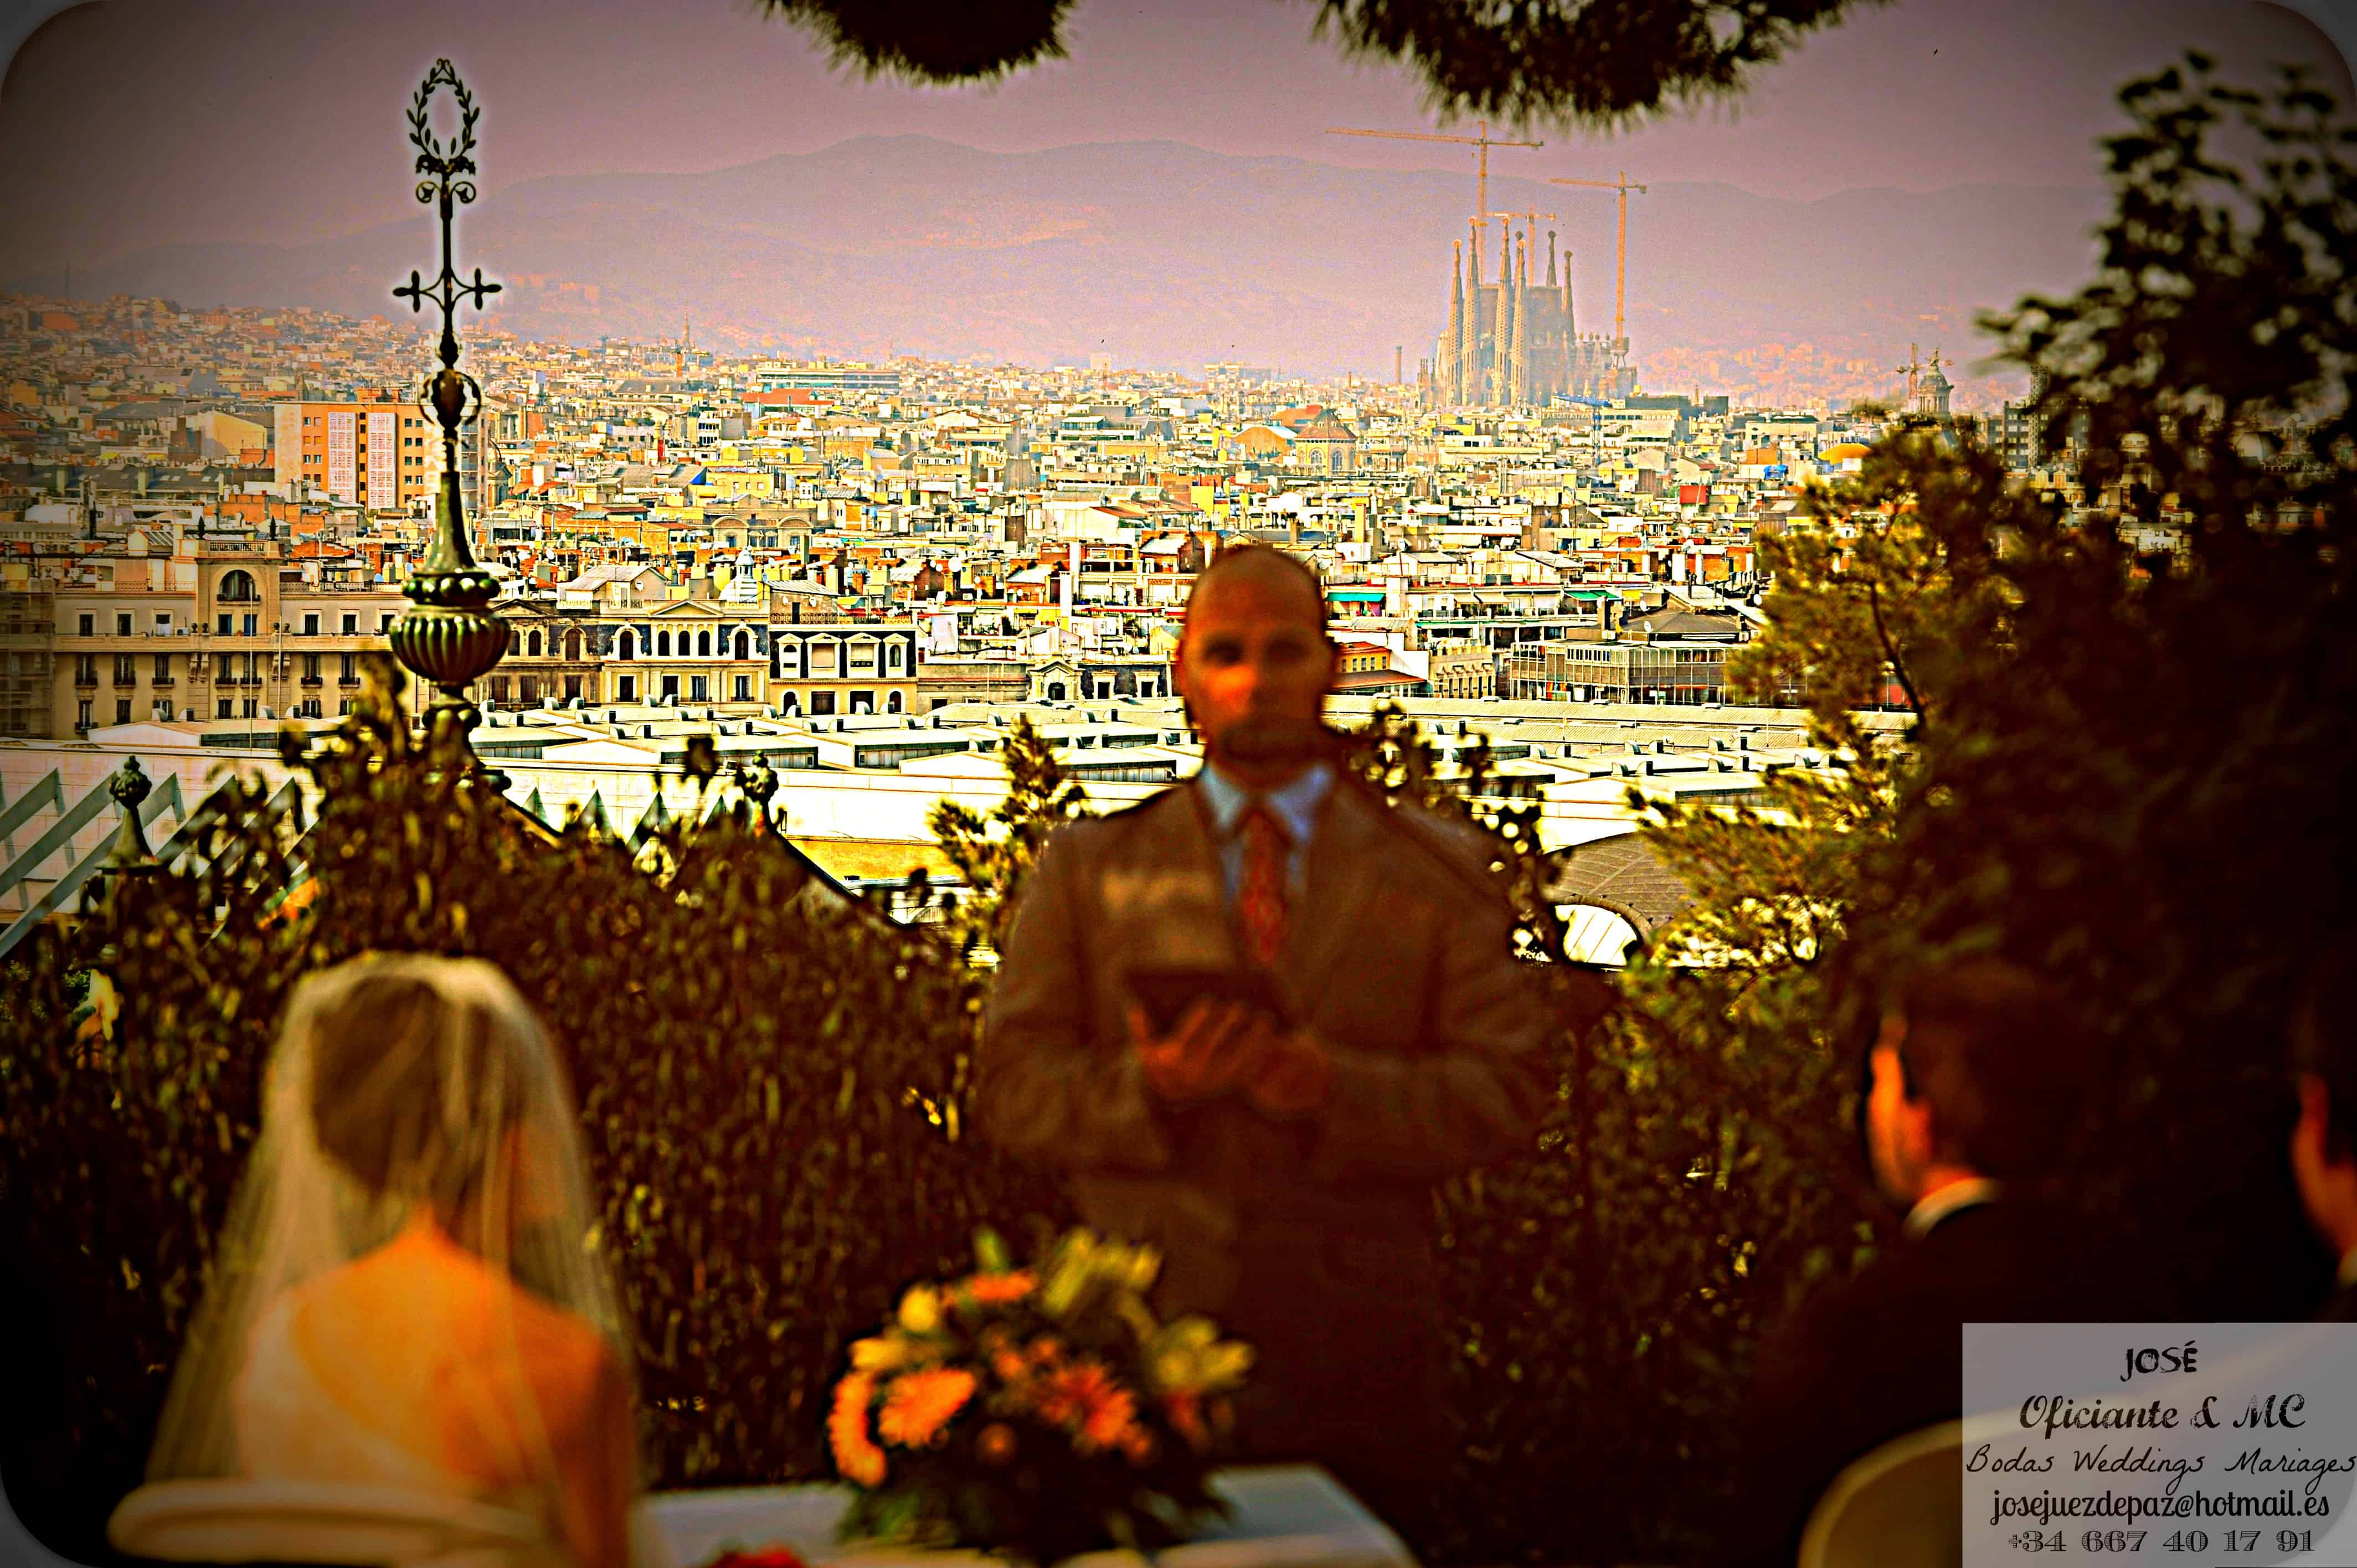 Wedding Spain Officiant josejuezdepaz@hotmail.es russian english languages